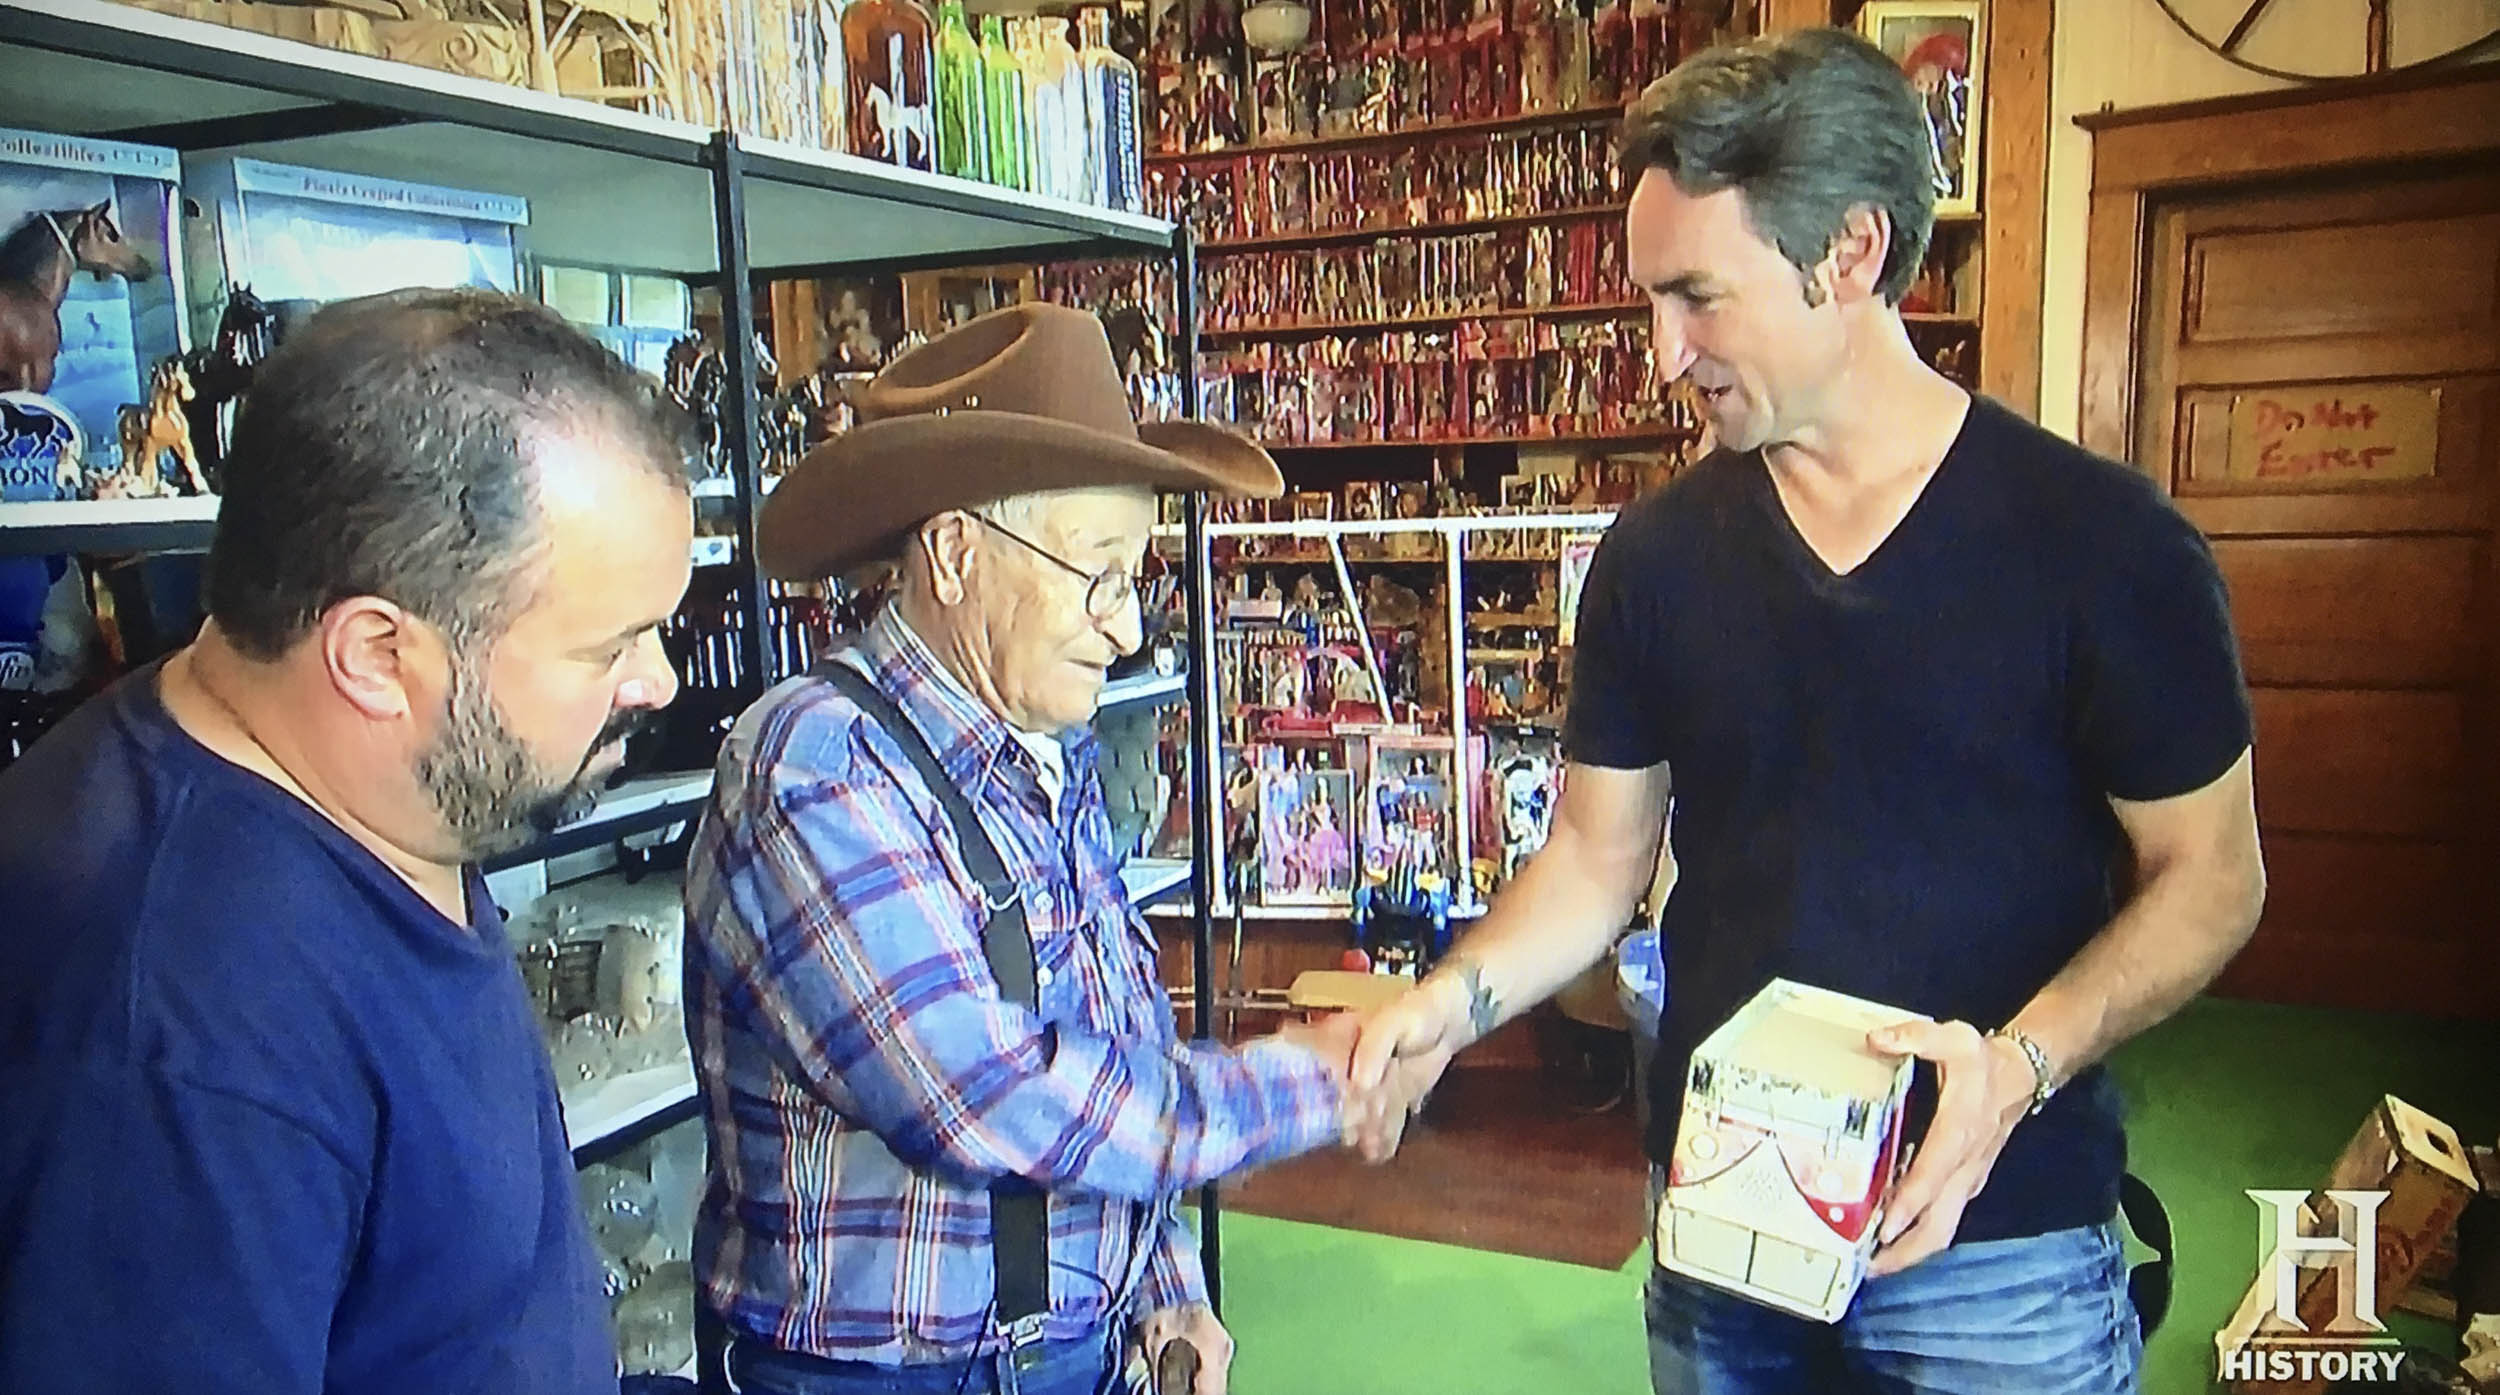 Ol' George and Mike Wolfe agree on a price for the VW lunch box.